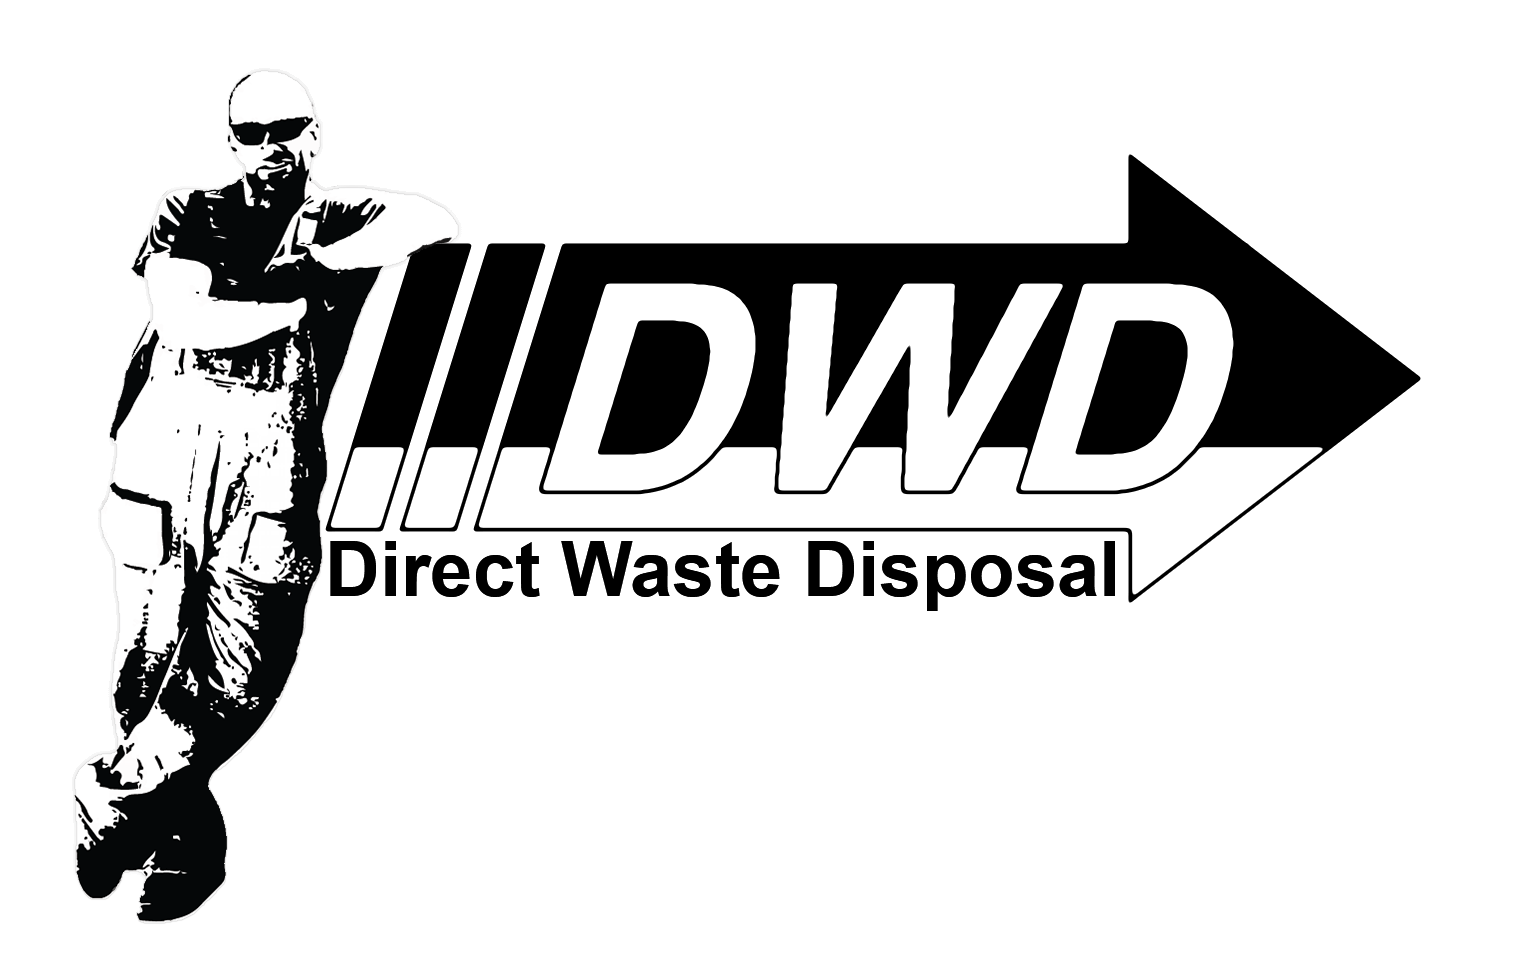 Direct Waste Disposal - Kevin Leaning on Logo